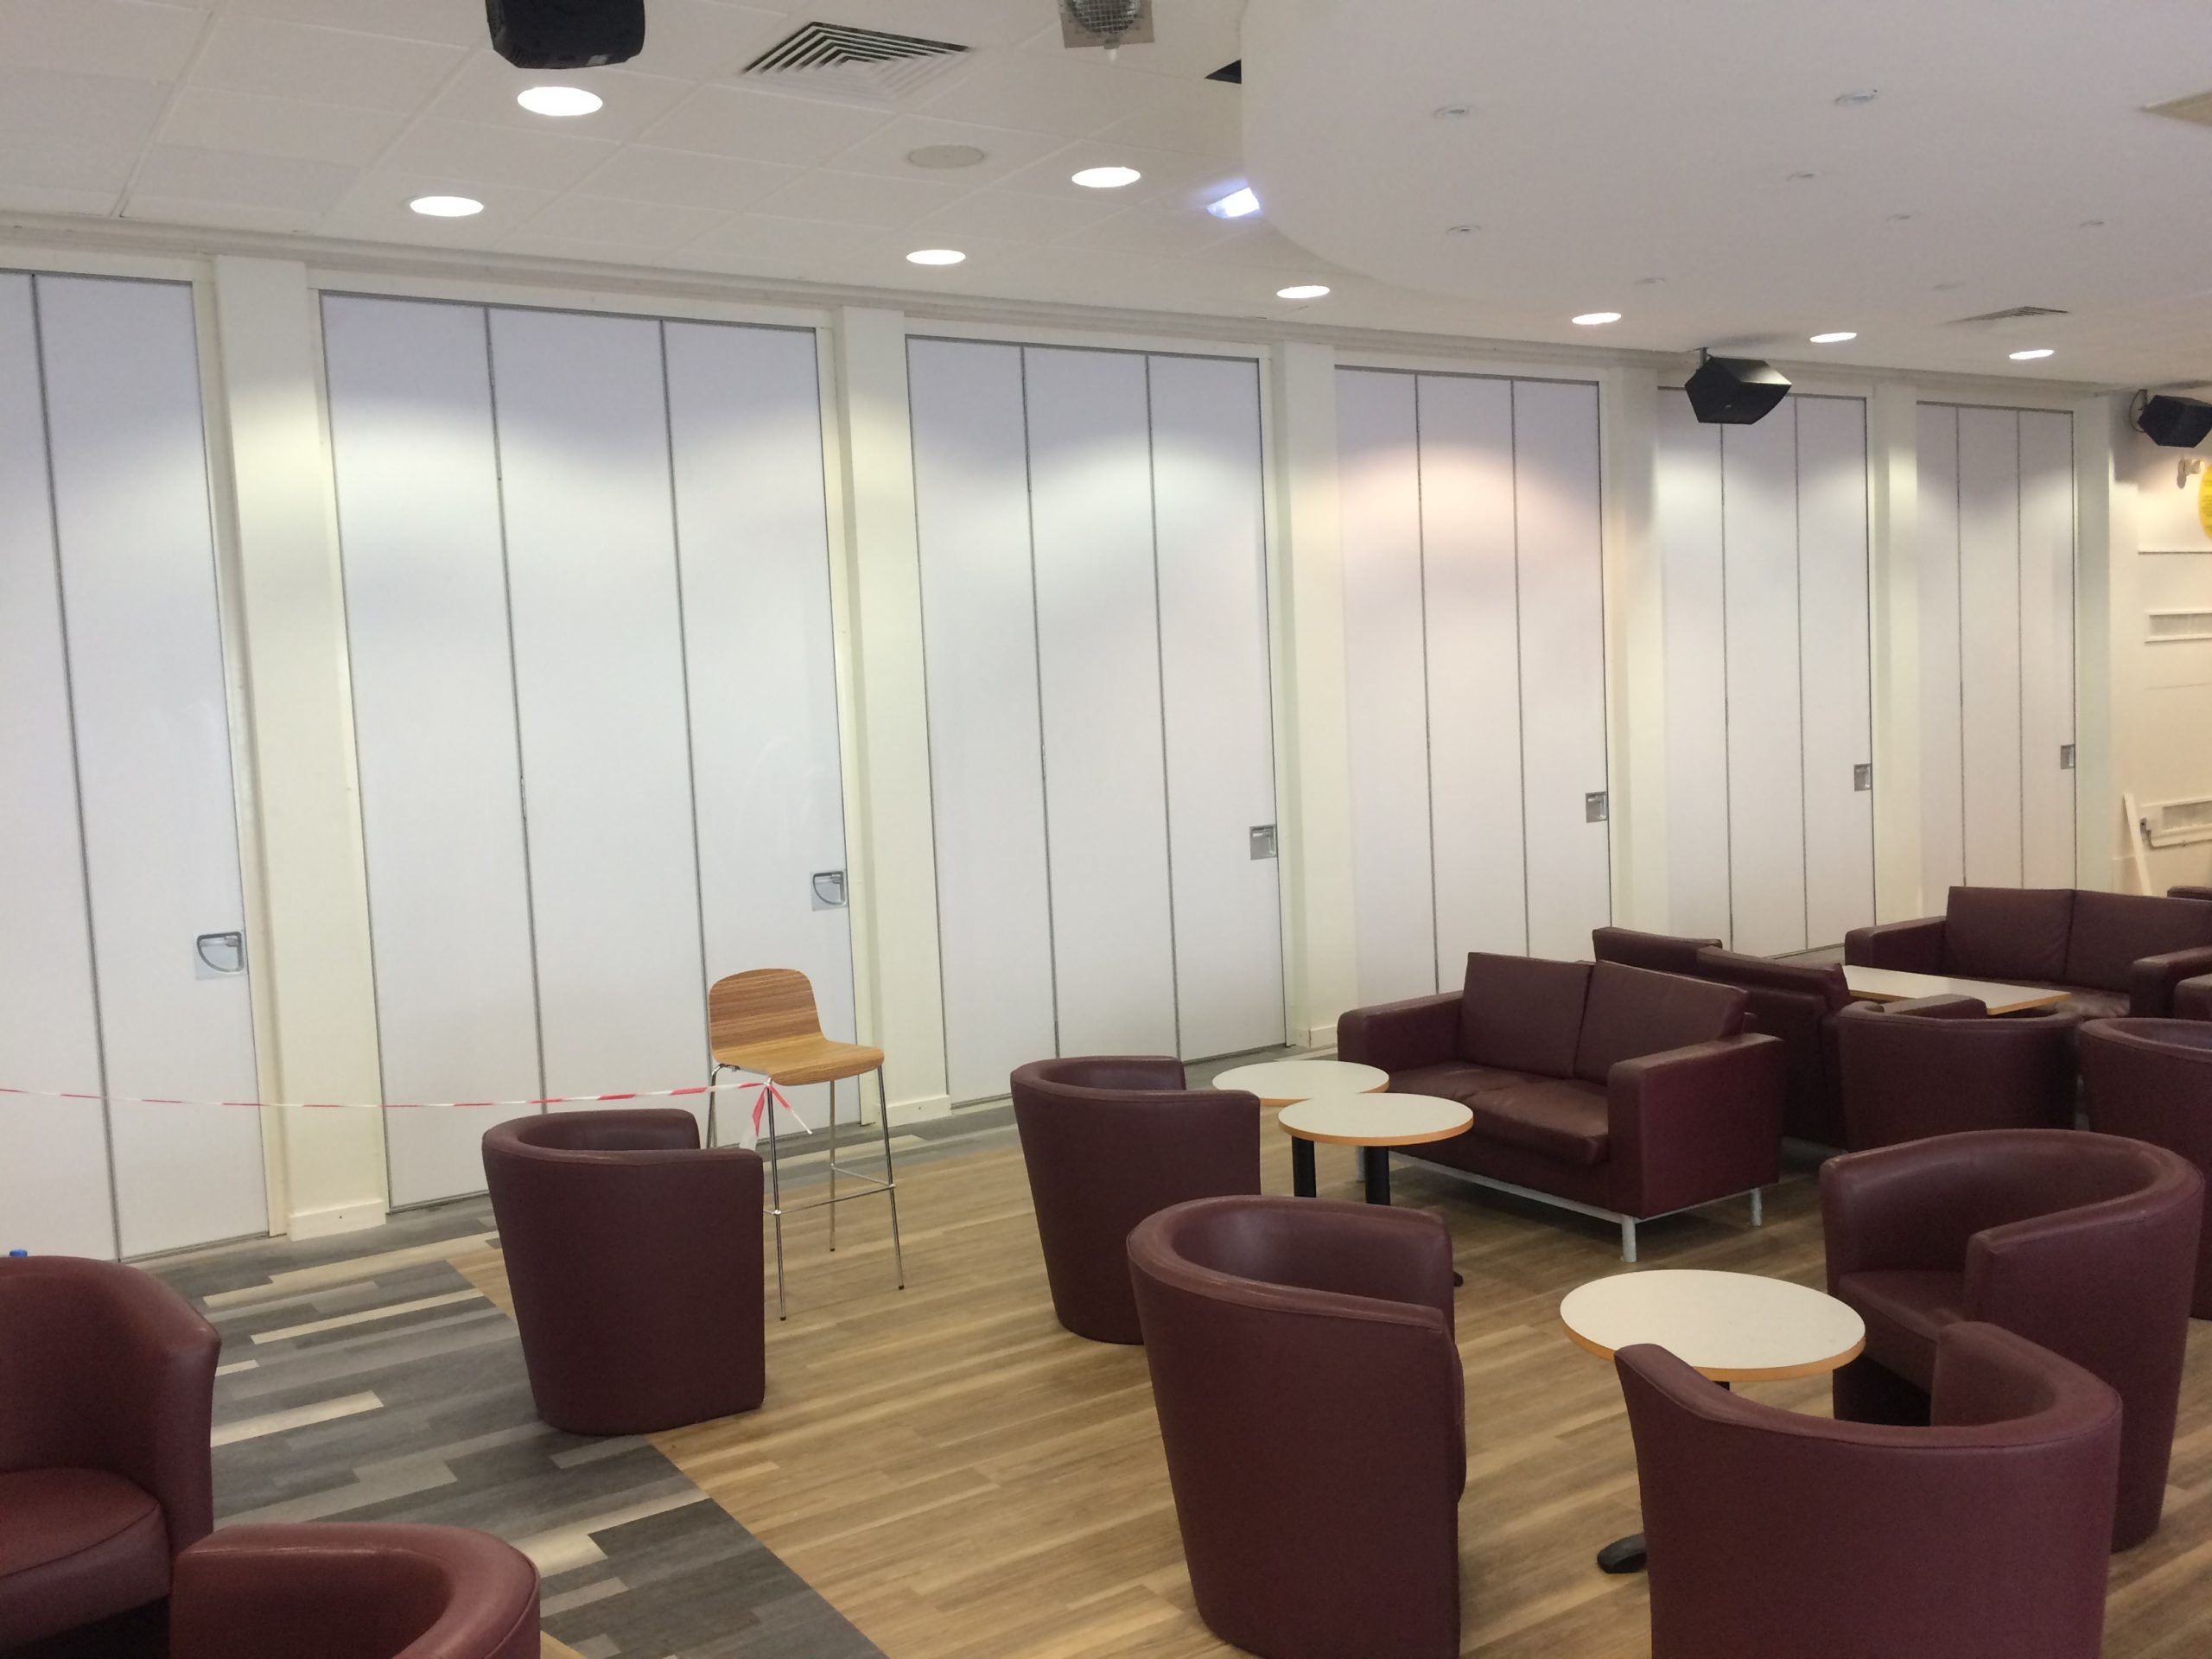 5 things to consider when choosing a movable wall system   AEG Teachwall